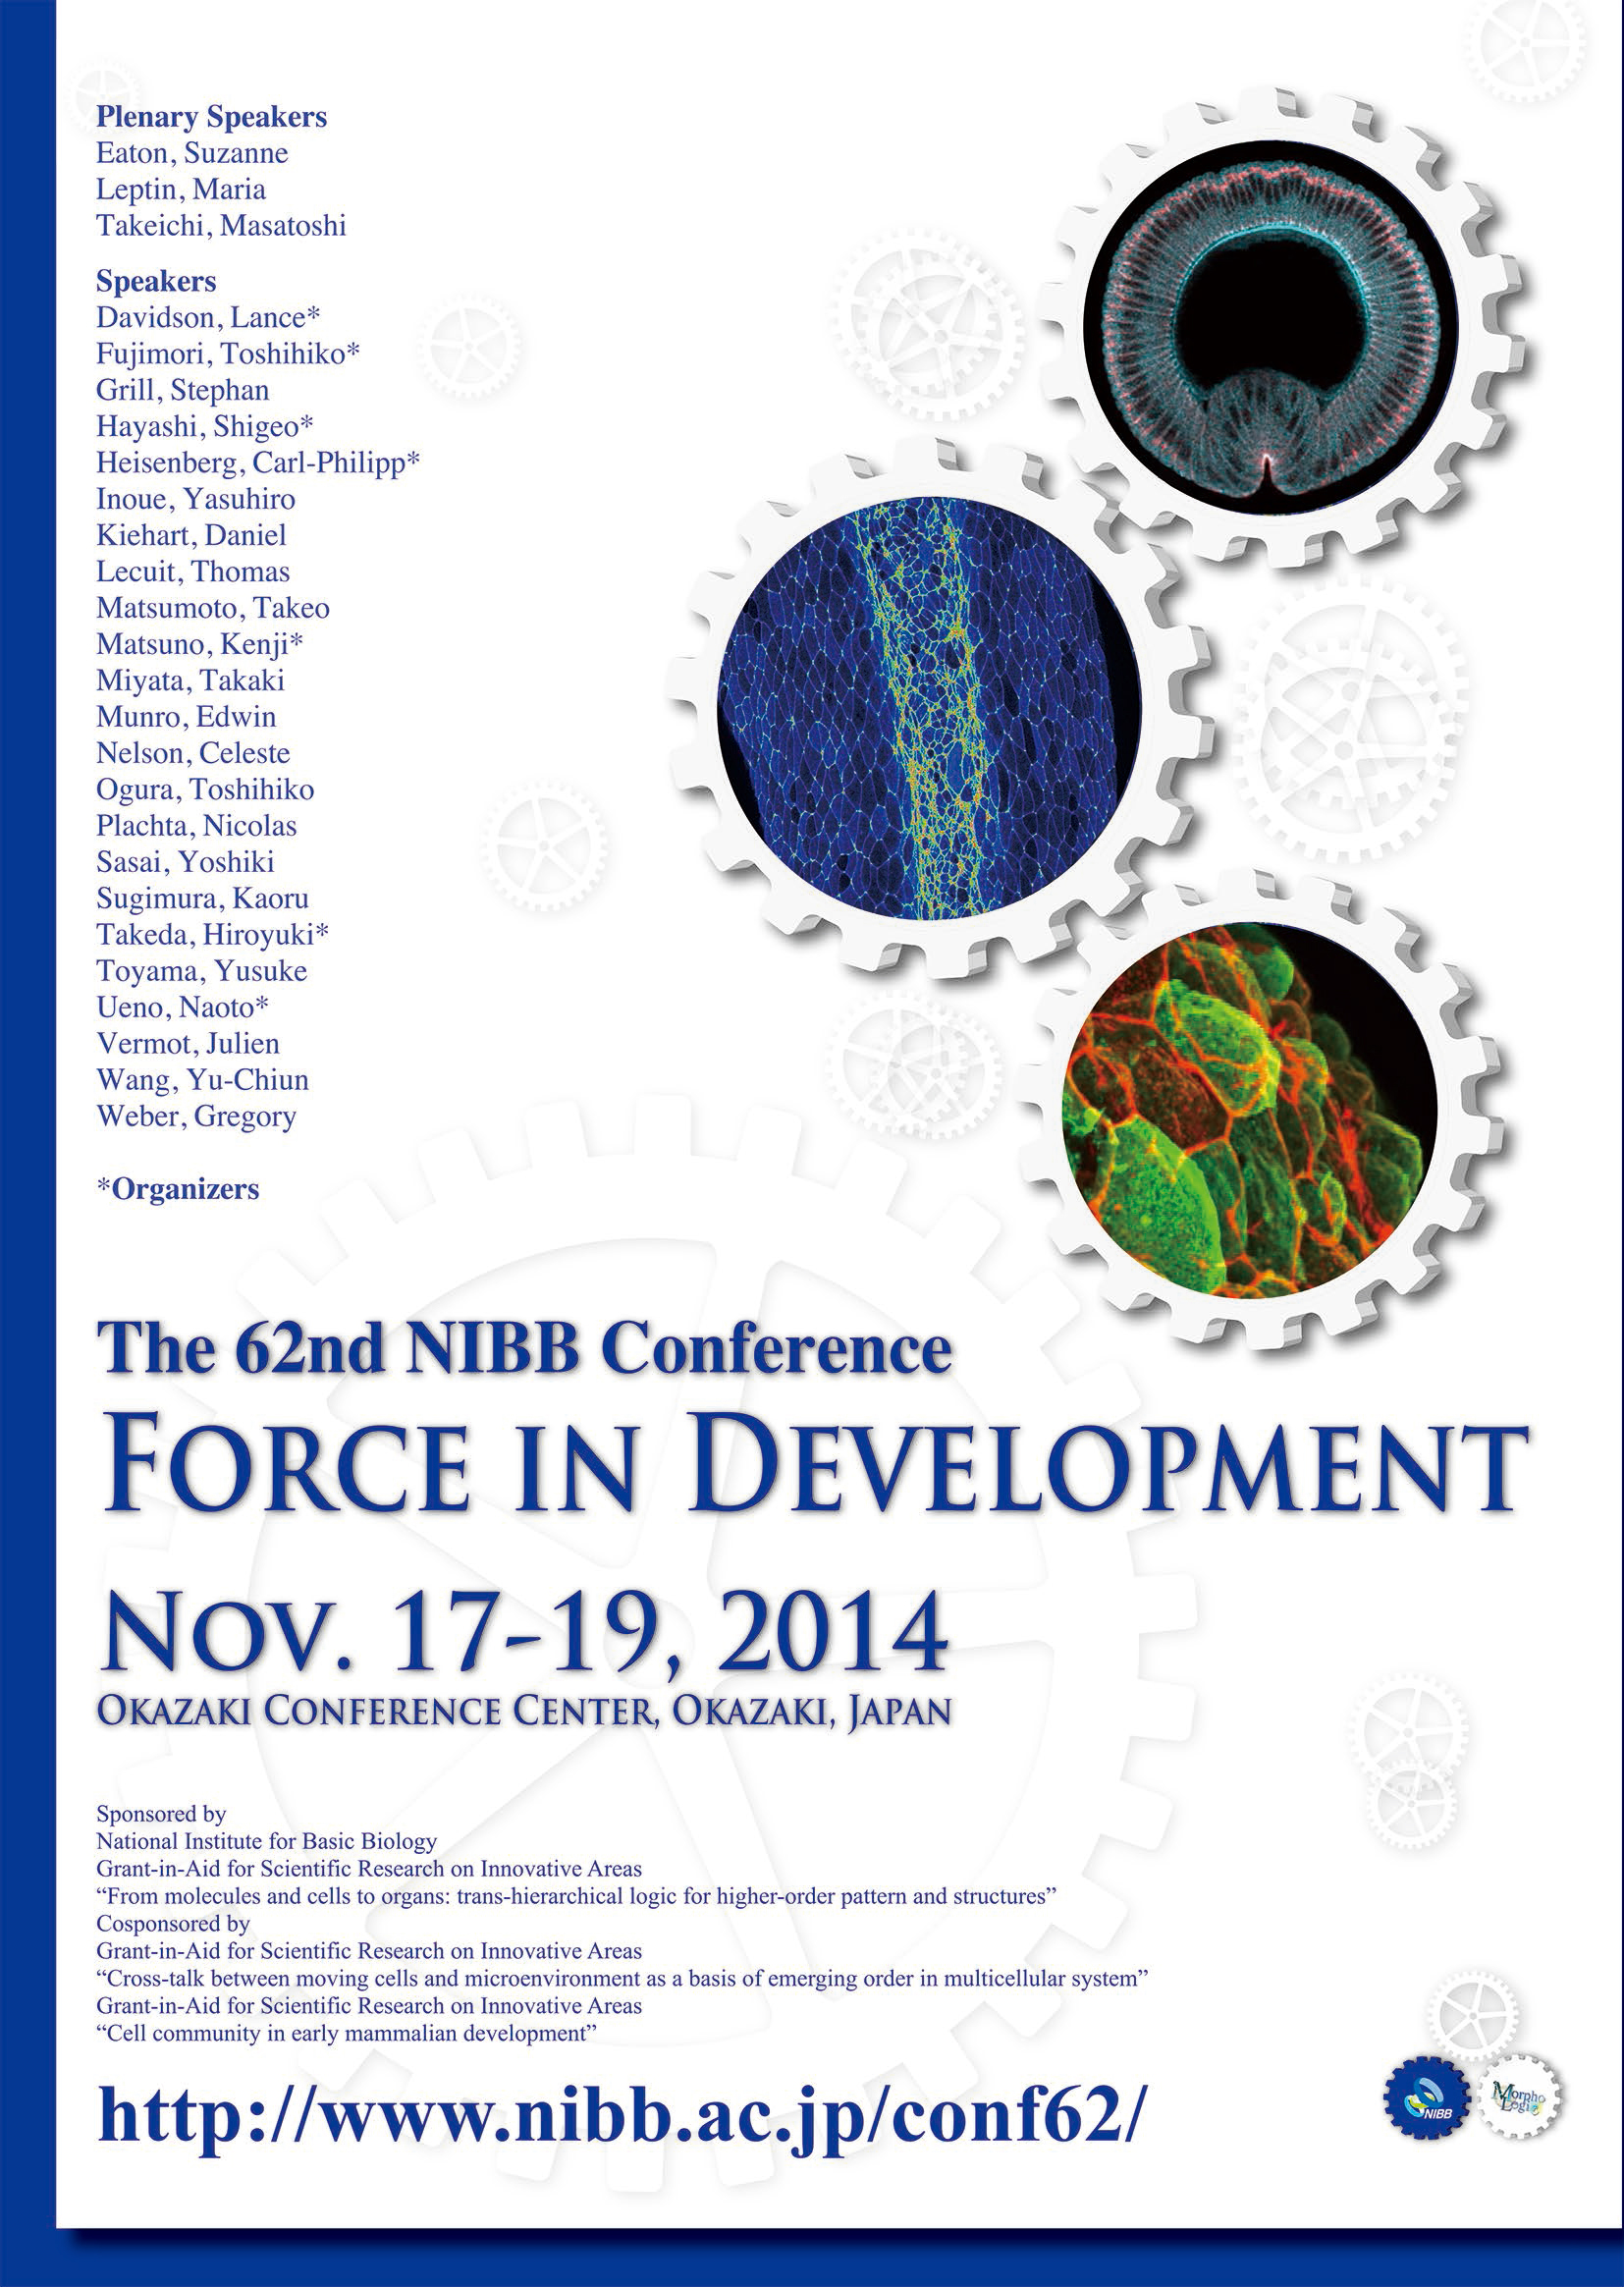 The 62nd NIBB Conference